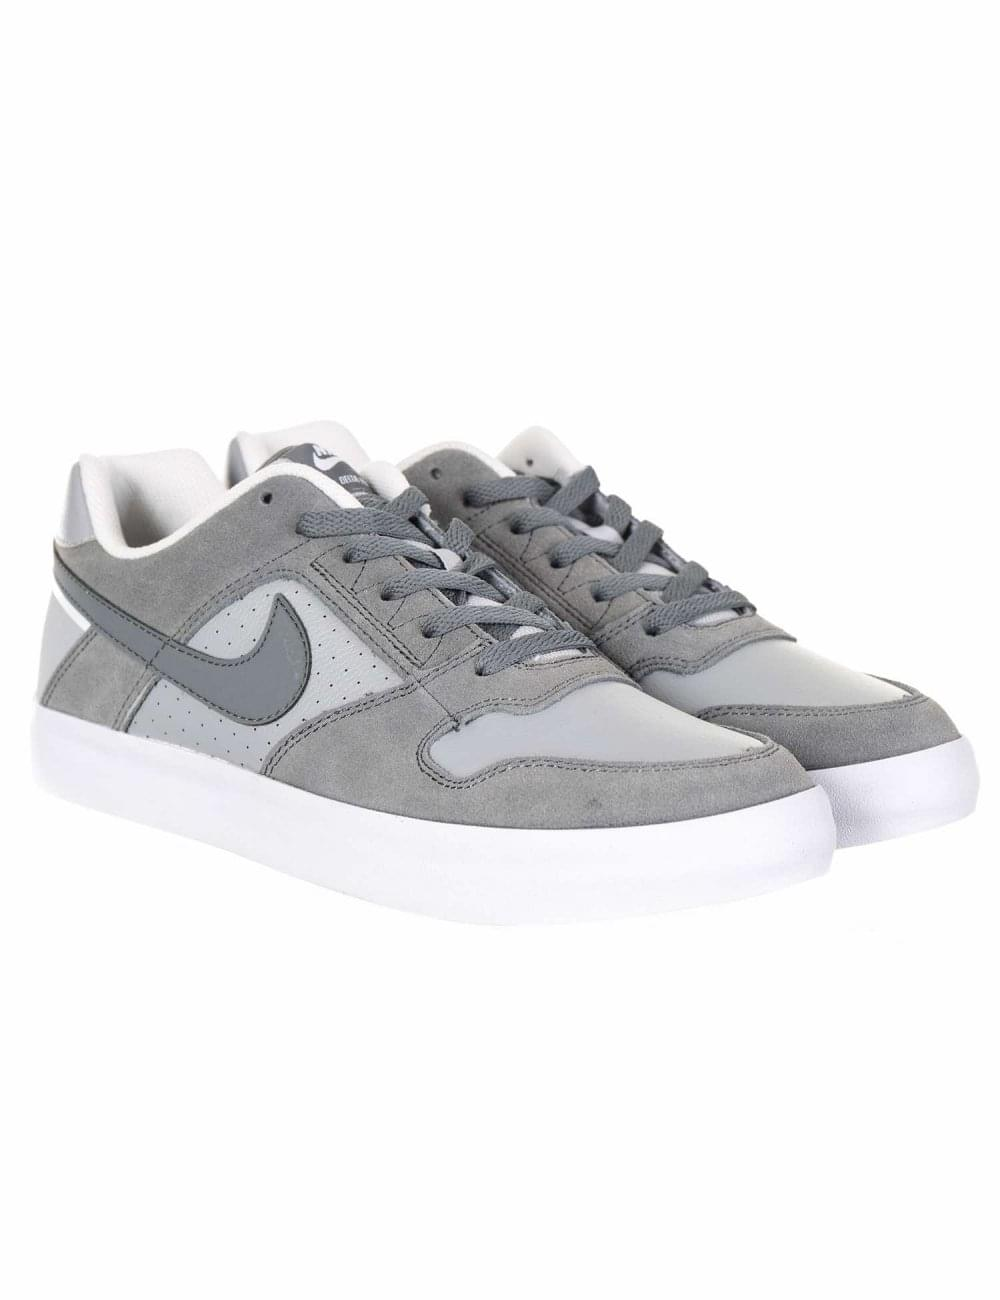 Delta Force Vulc Trainers - Cool Grey/Wolf Grey